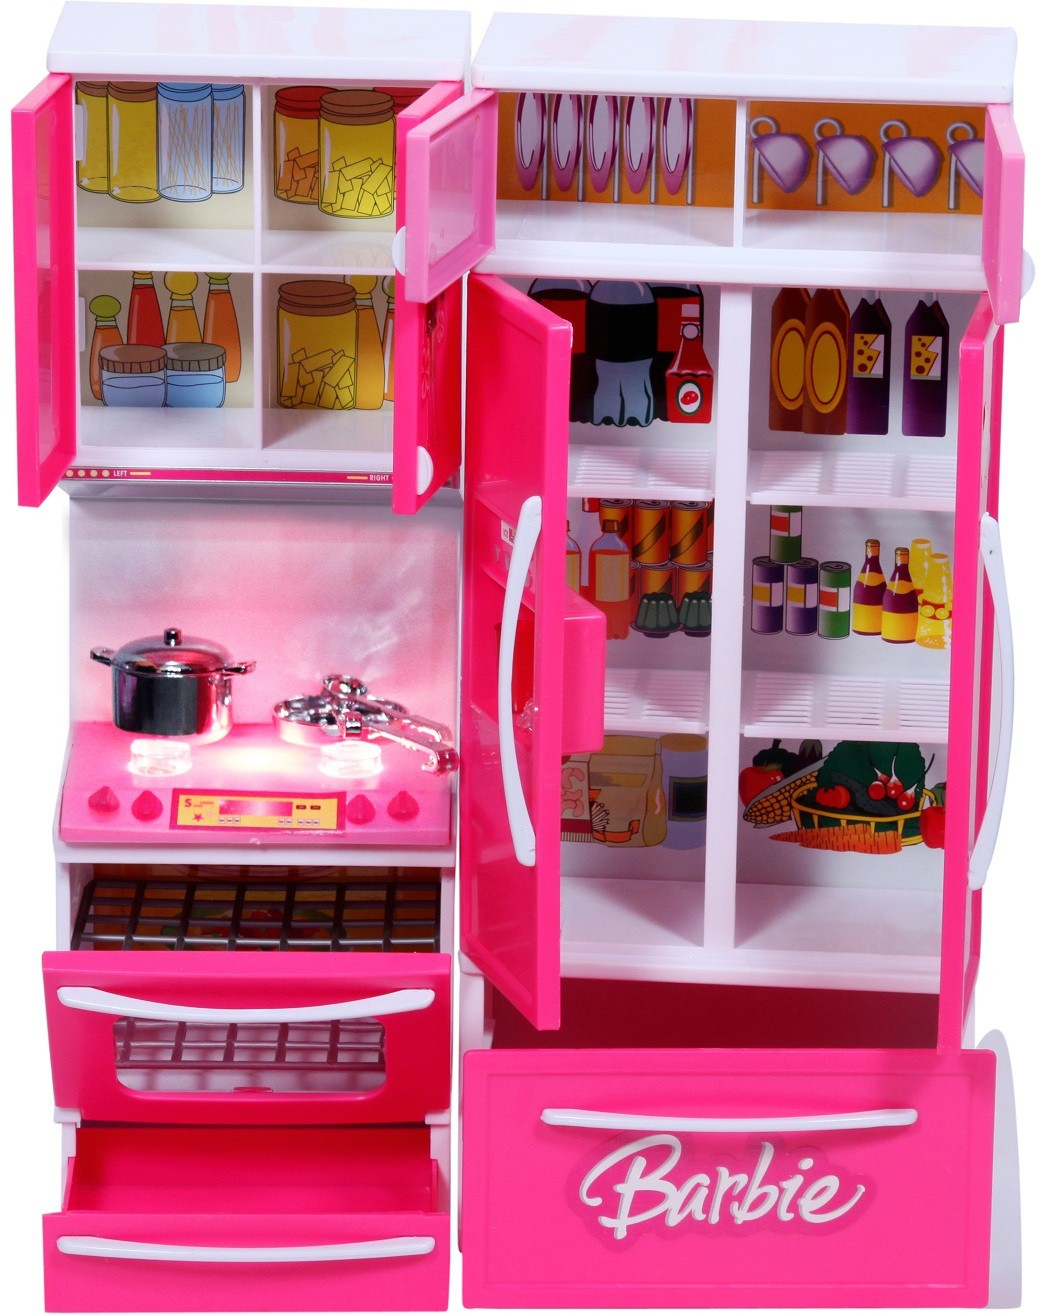 Kids toys price list in india 18 06 2017 buy kids toys for Kitchen set 008 82